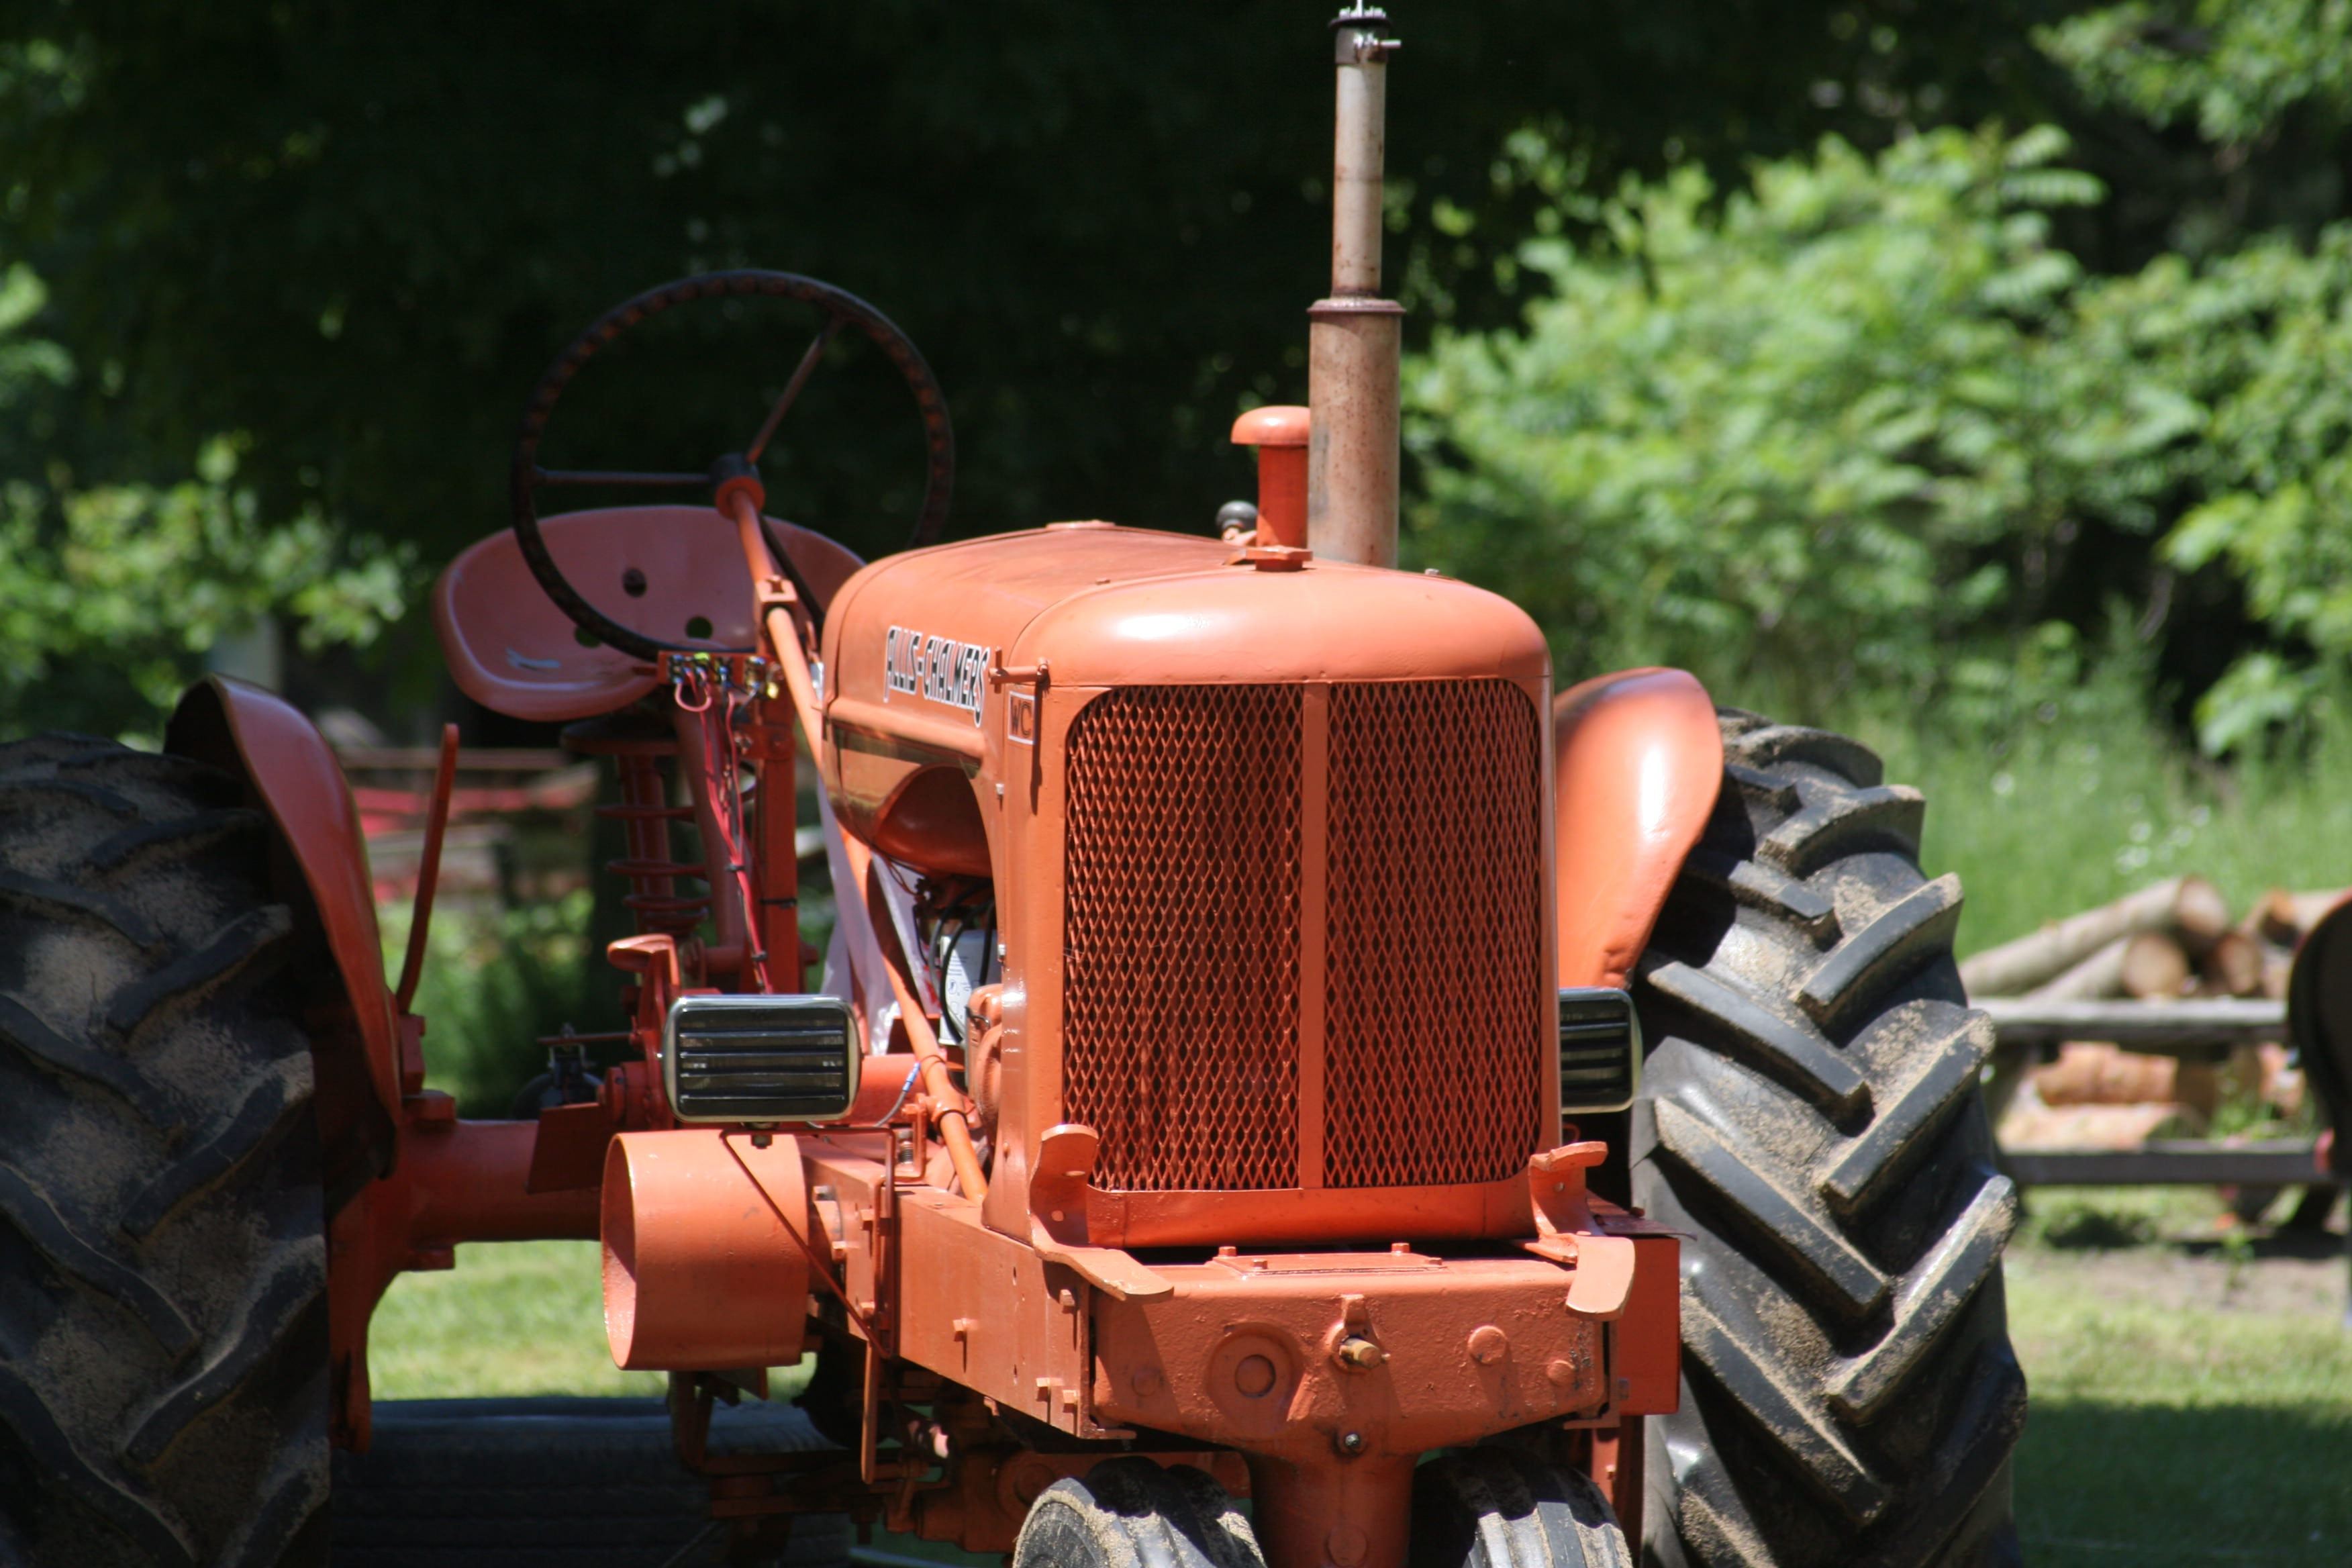 brown tractor on green grass field during daytime